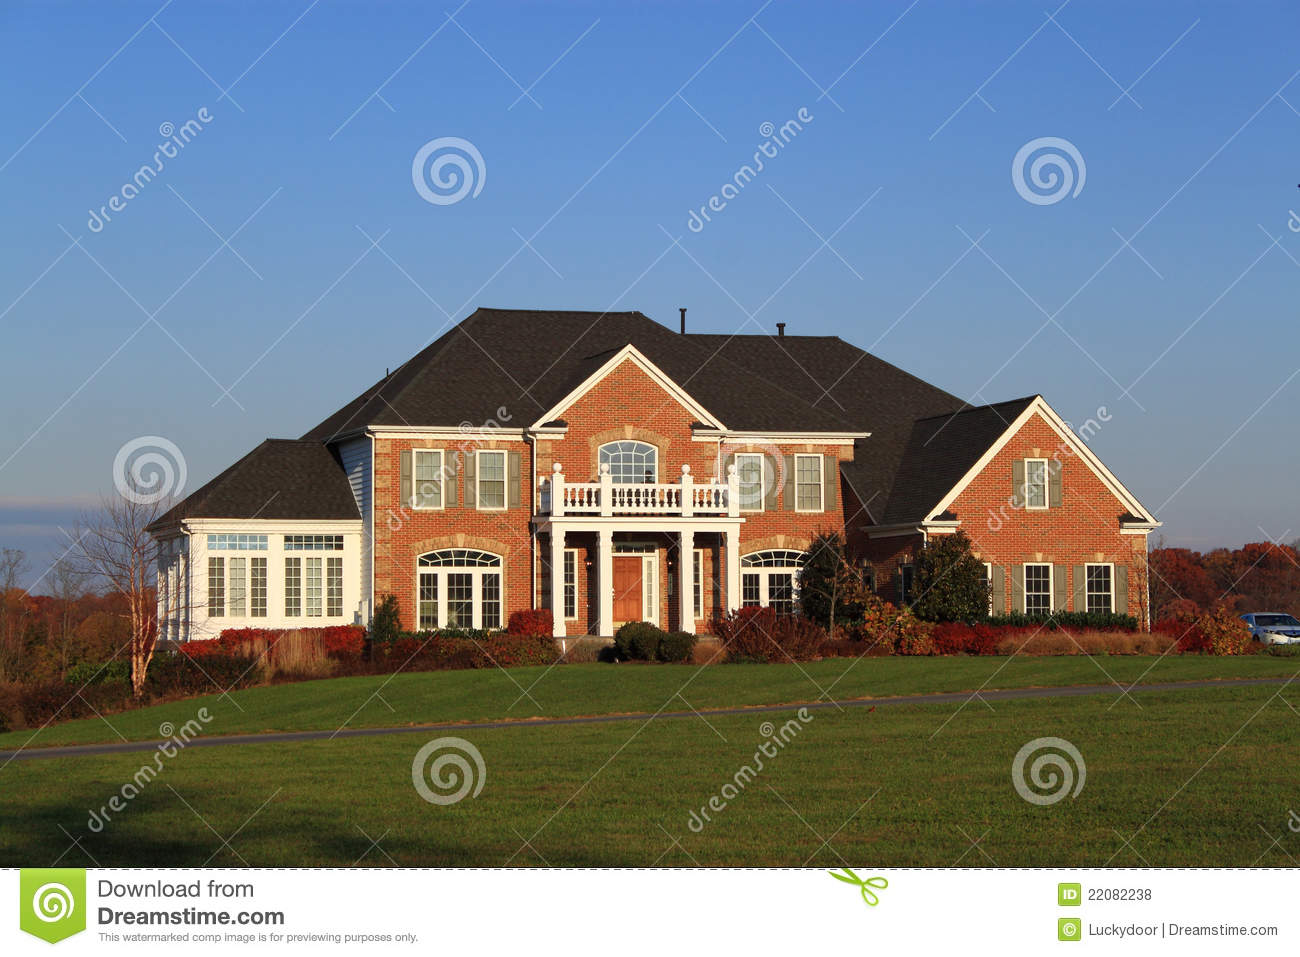 Luxury home royalty free stock photos image 22082238 for Free luxury home images